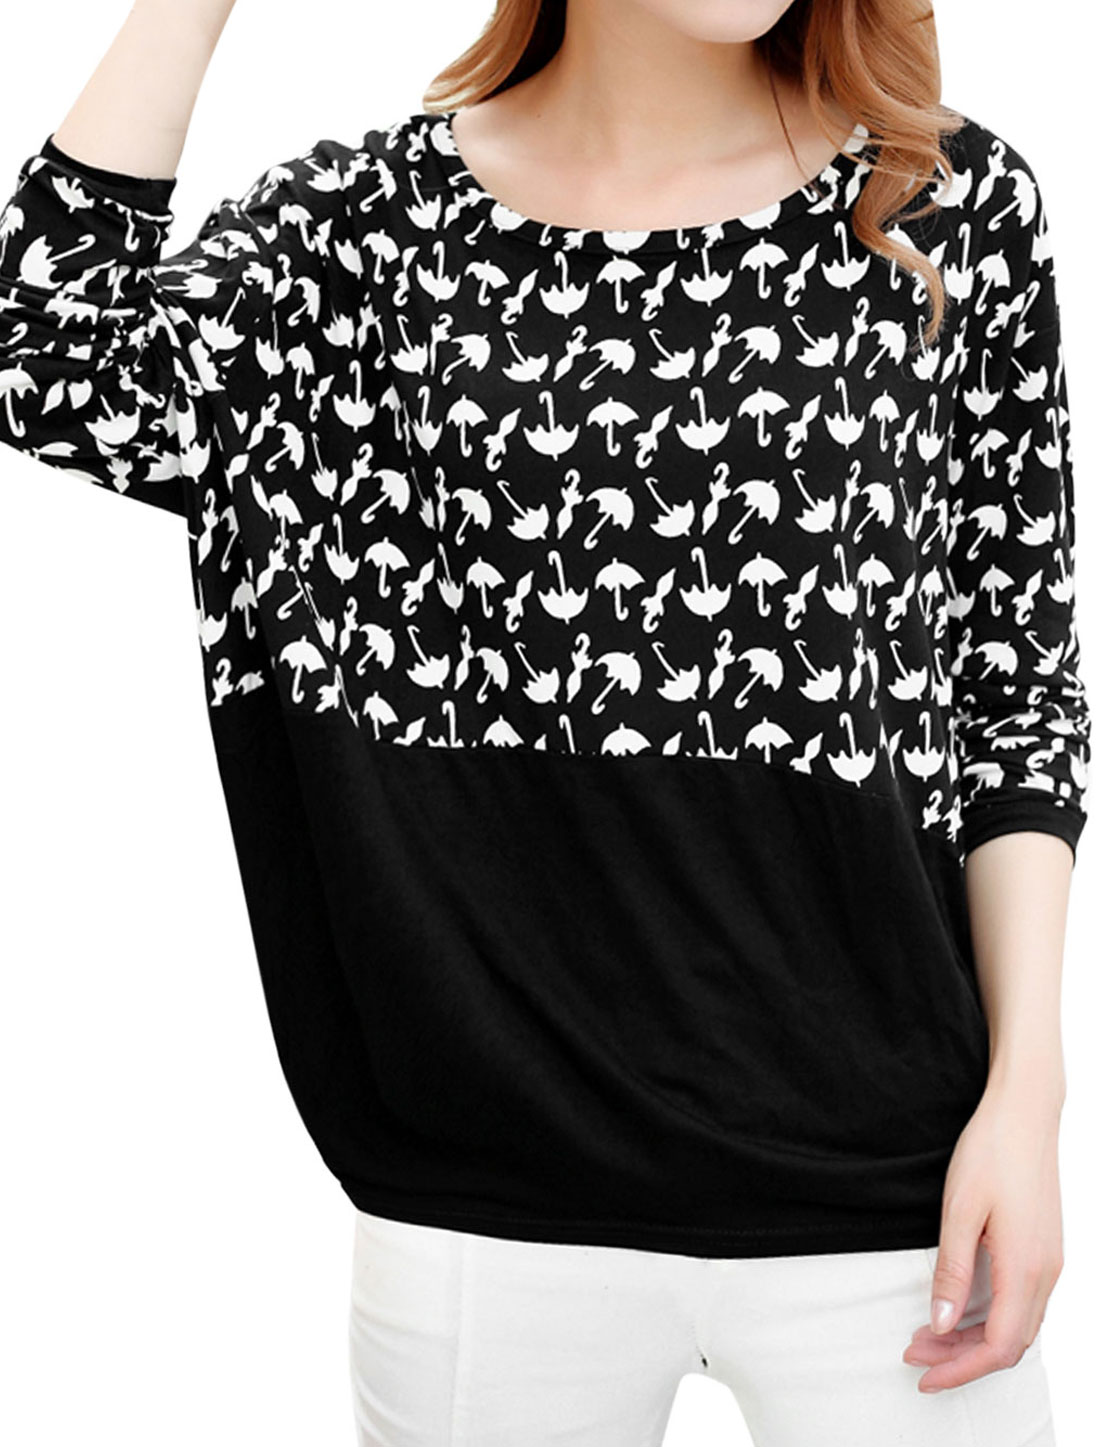 Women Umbrella Pattern 3/4 Batwing Sleeves Loose Shirt Black XS